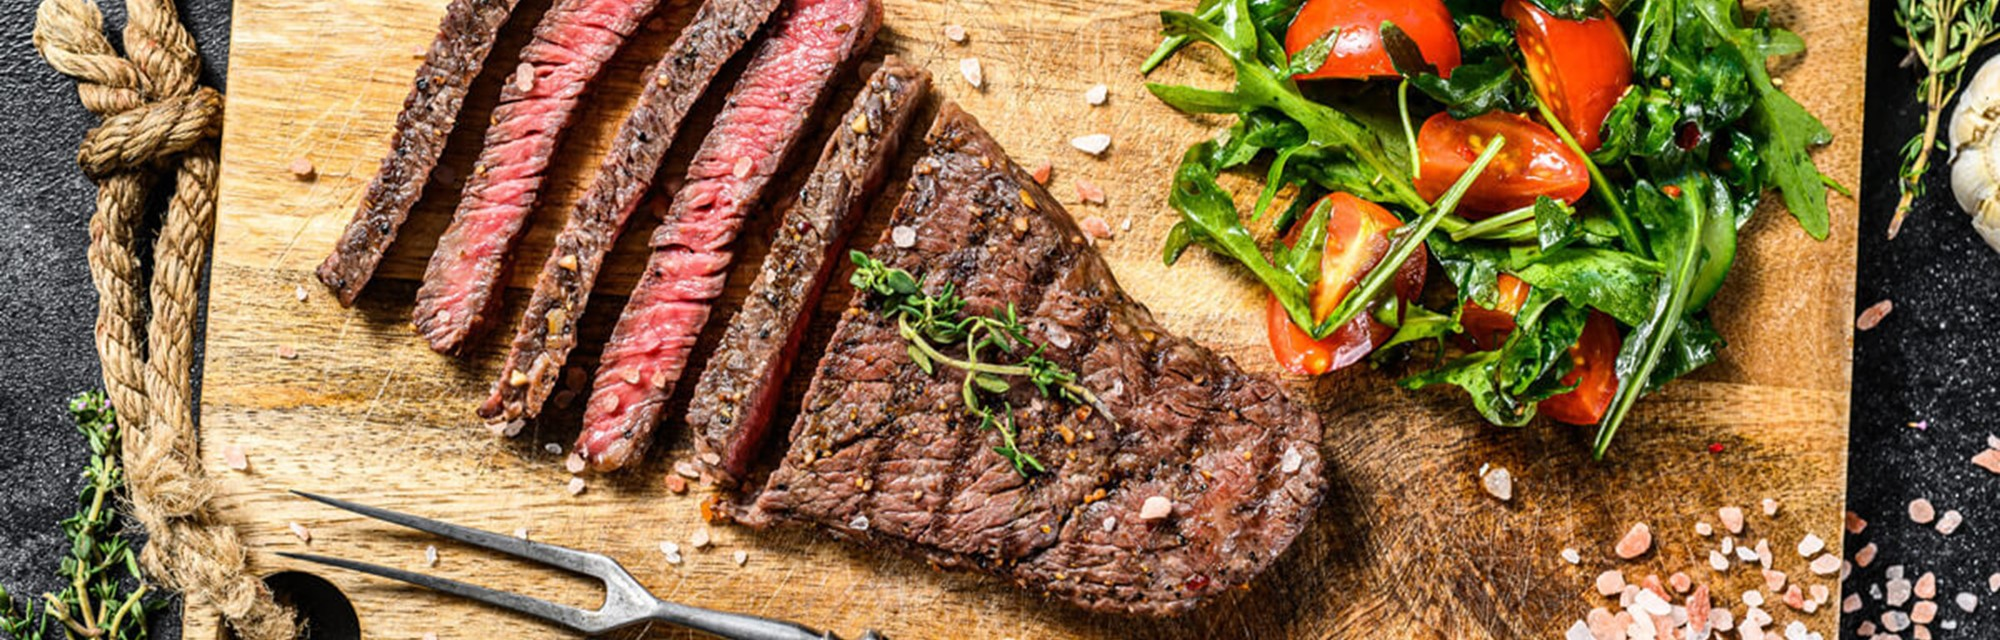 Medium-rare rump steak on a chopping board with cherry tomatoes and leafy salad